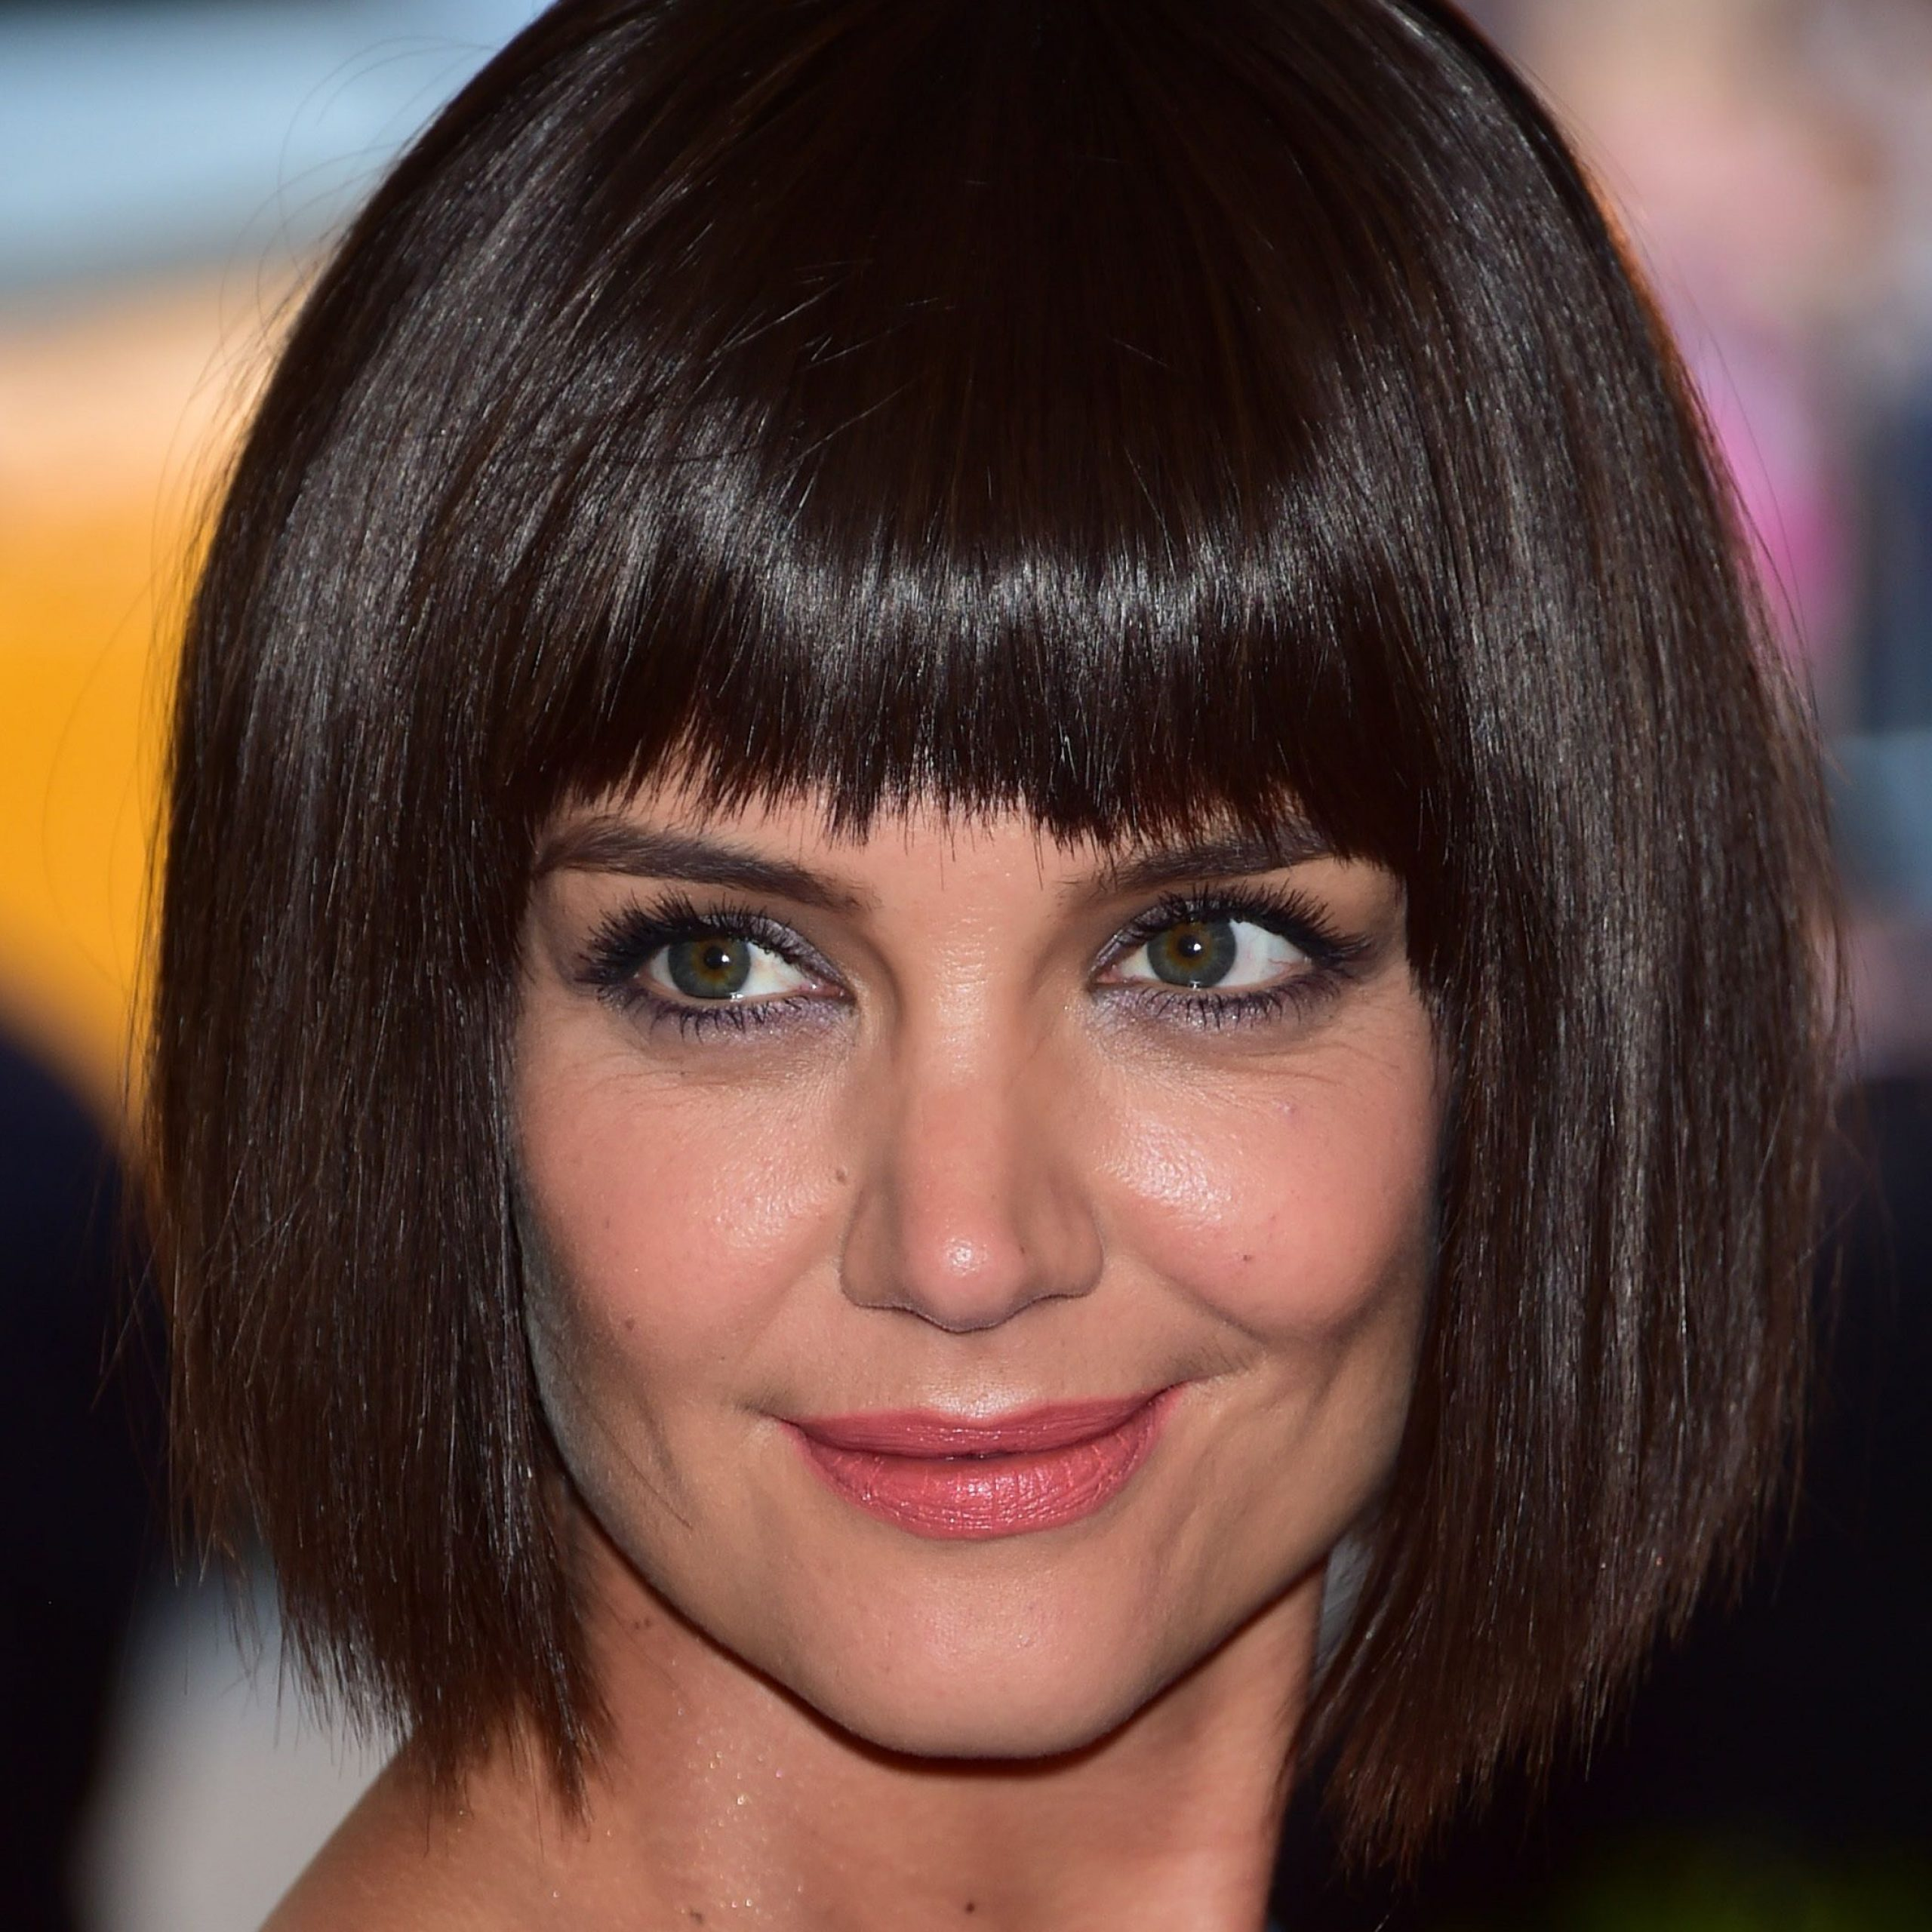 45 Cute Short Haircuts For Women 2019 – Short Celebrity Inside V Cut Outgrown Pixie Haircuts (View 13 of 20)